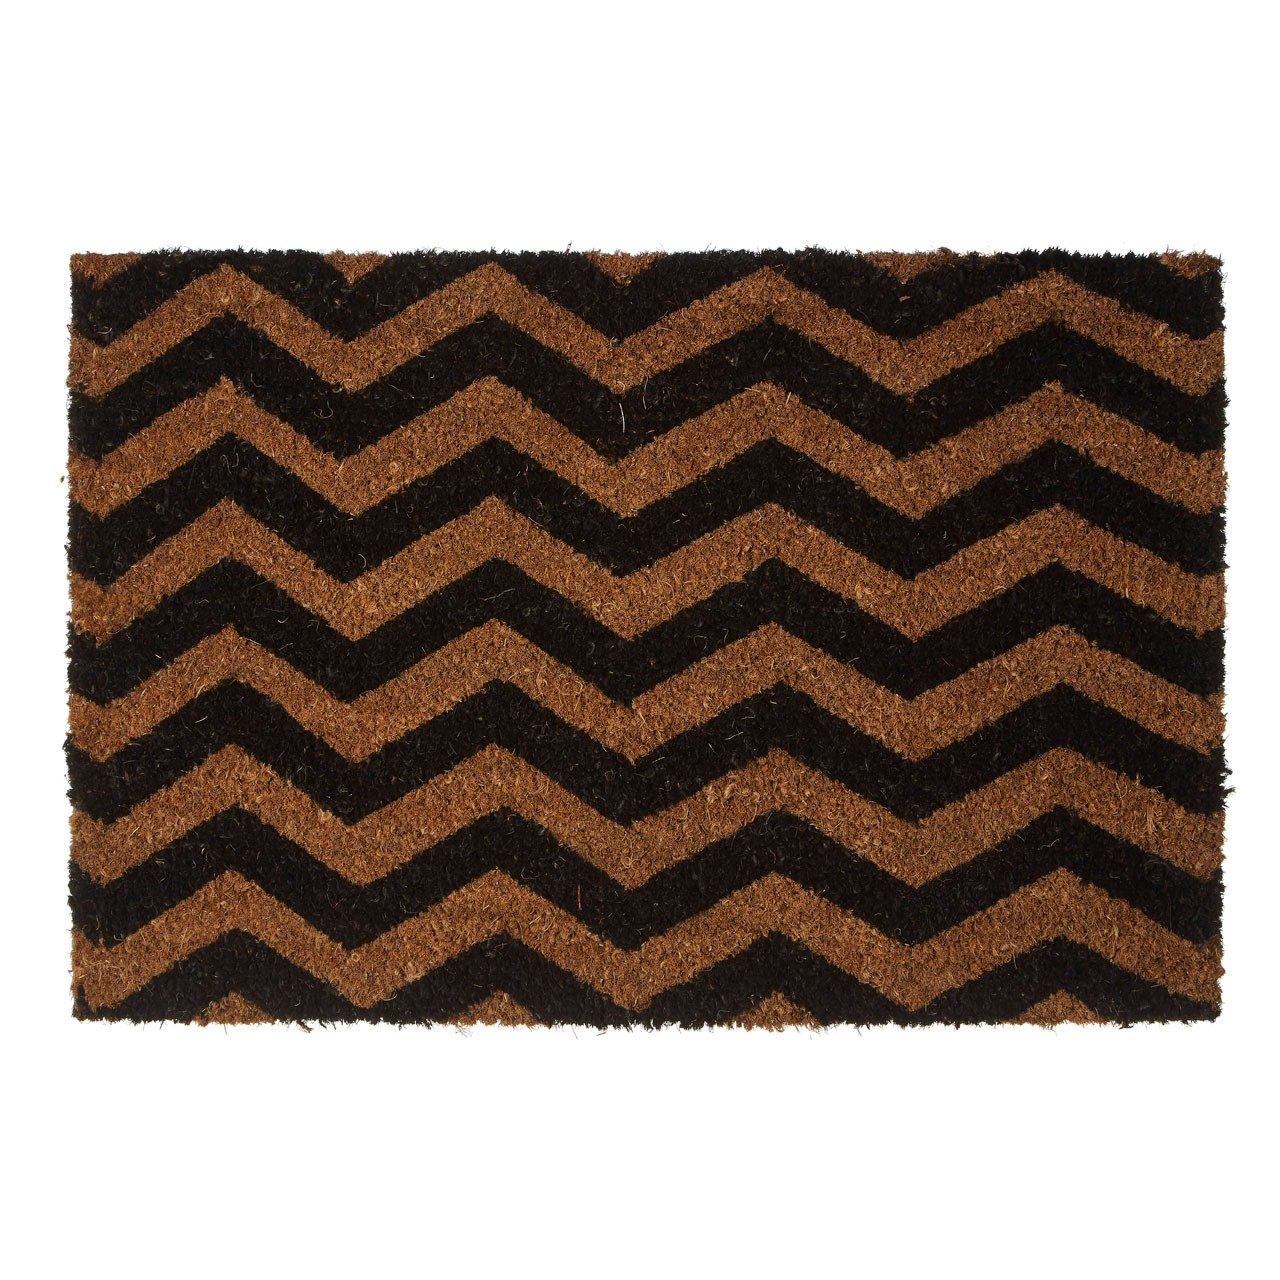 Prime Furnishing Chevron Doormat, PVC Backed Coir